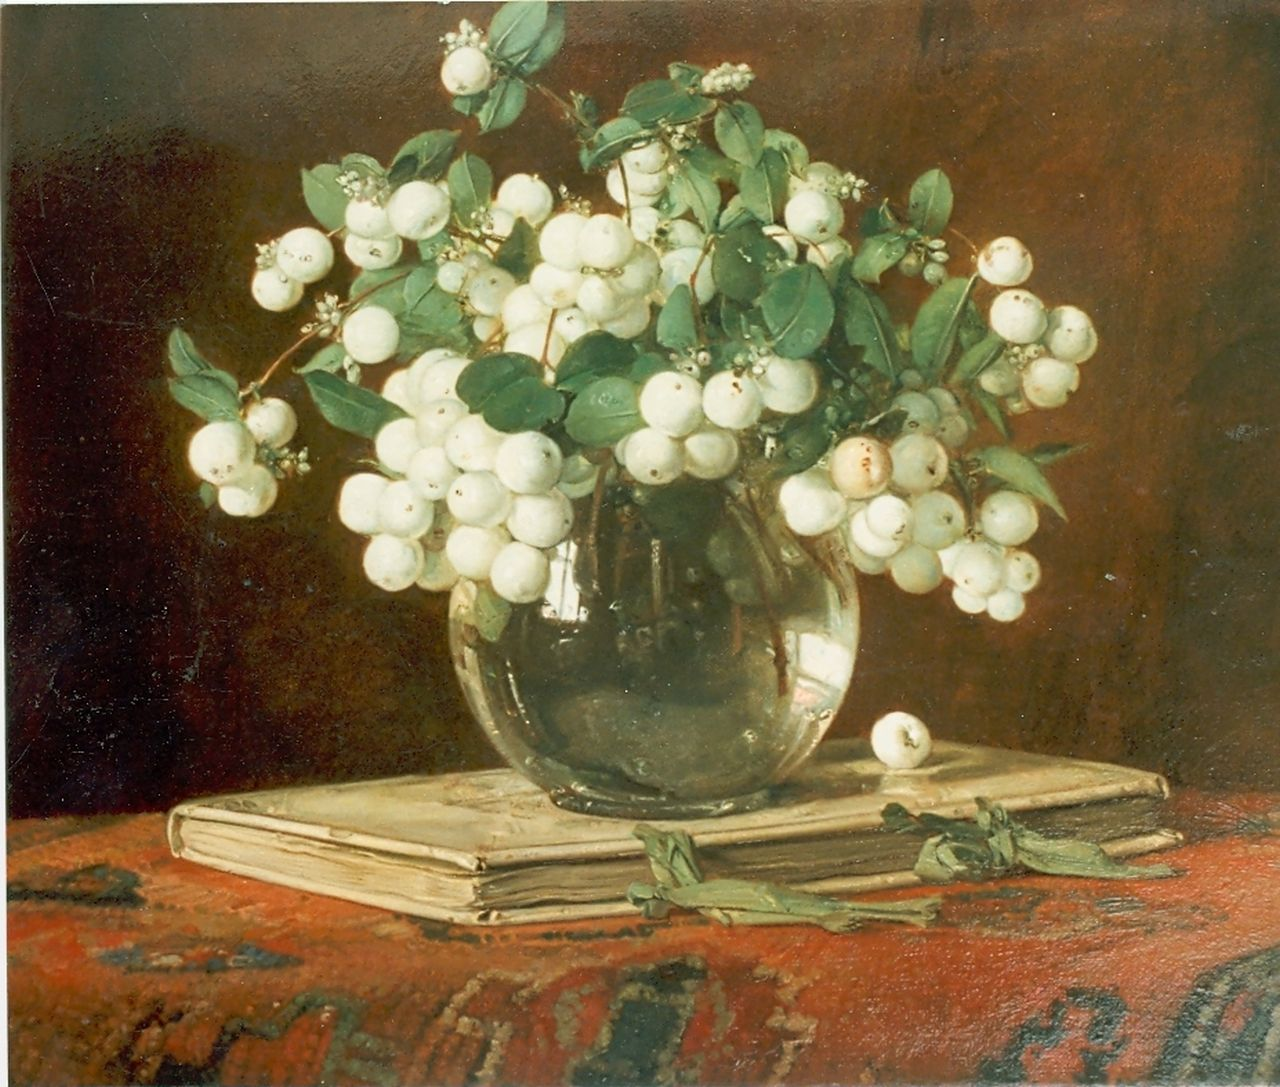 Bogaerts J.J.M.  | Johannes Jacobus Maria 'Jan' Bogaerts, Snow-berries in a vase, oil on canvas 35.0 x 40.5 cm, signed u.r. and dated 1934